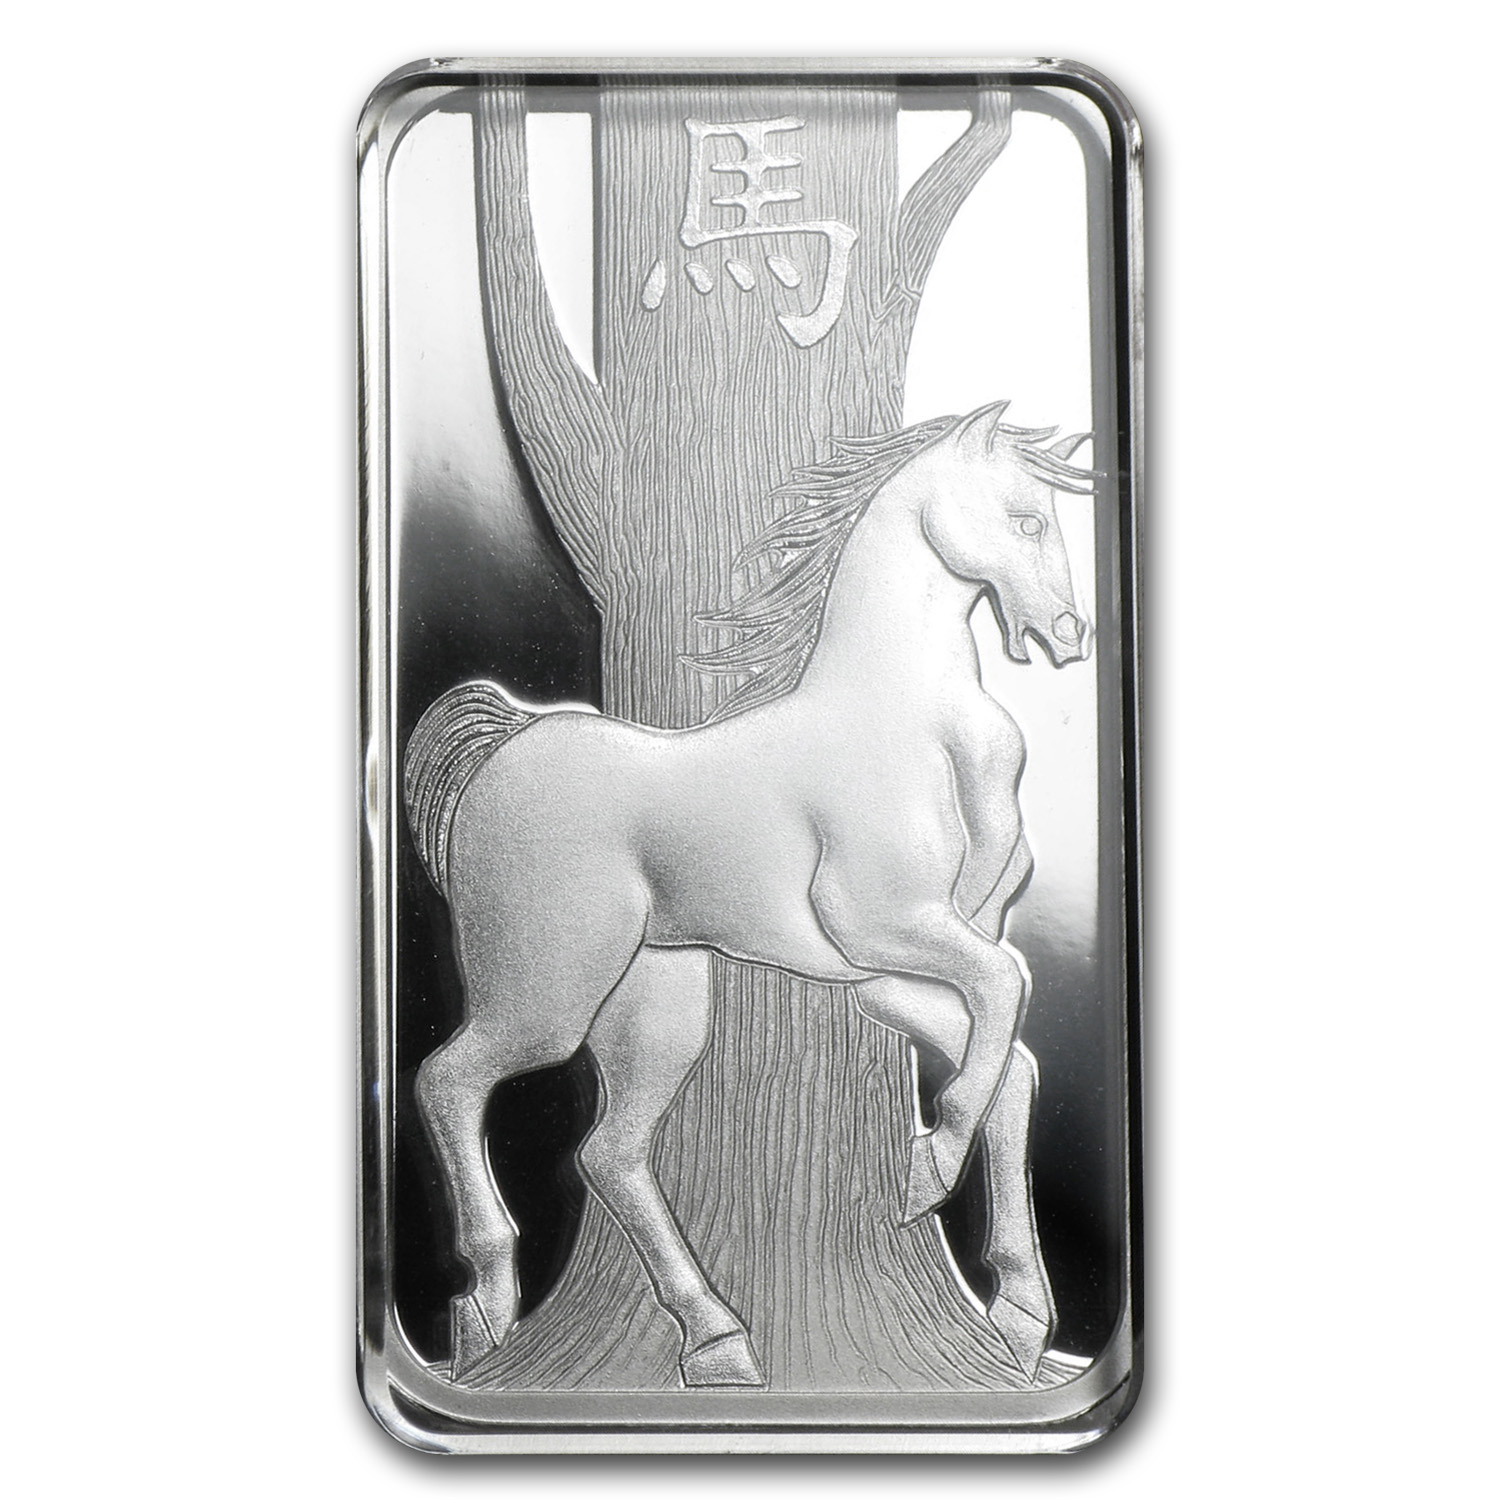 10 gram Silver Bars - Pamp Suisse (Year of the Horse)